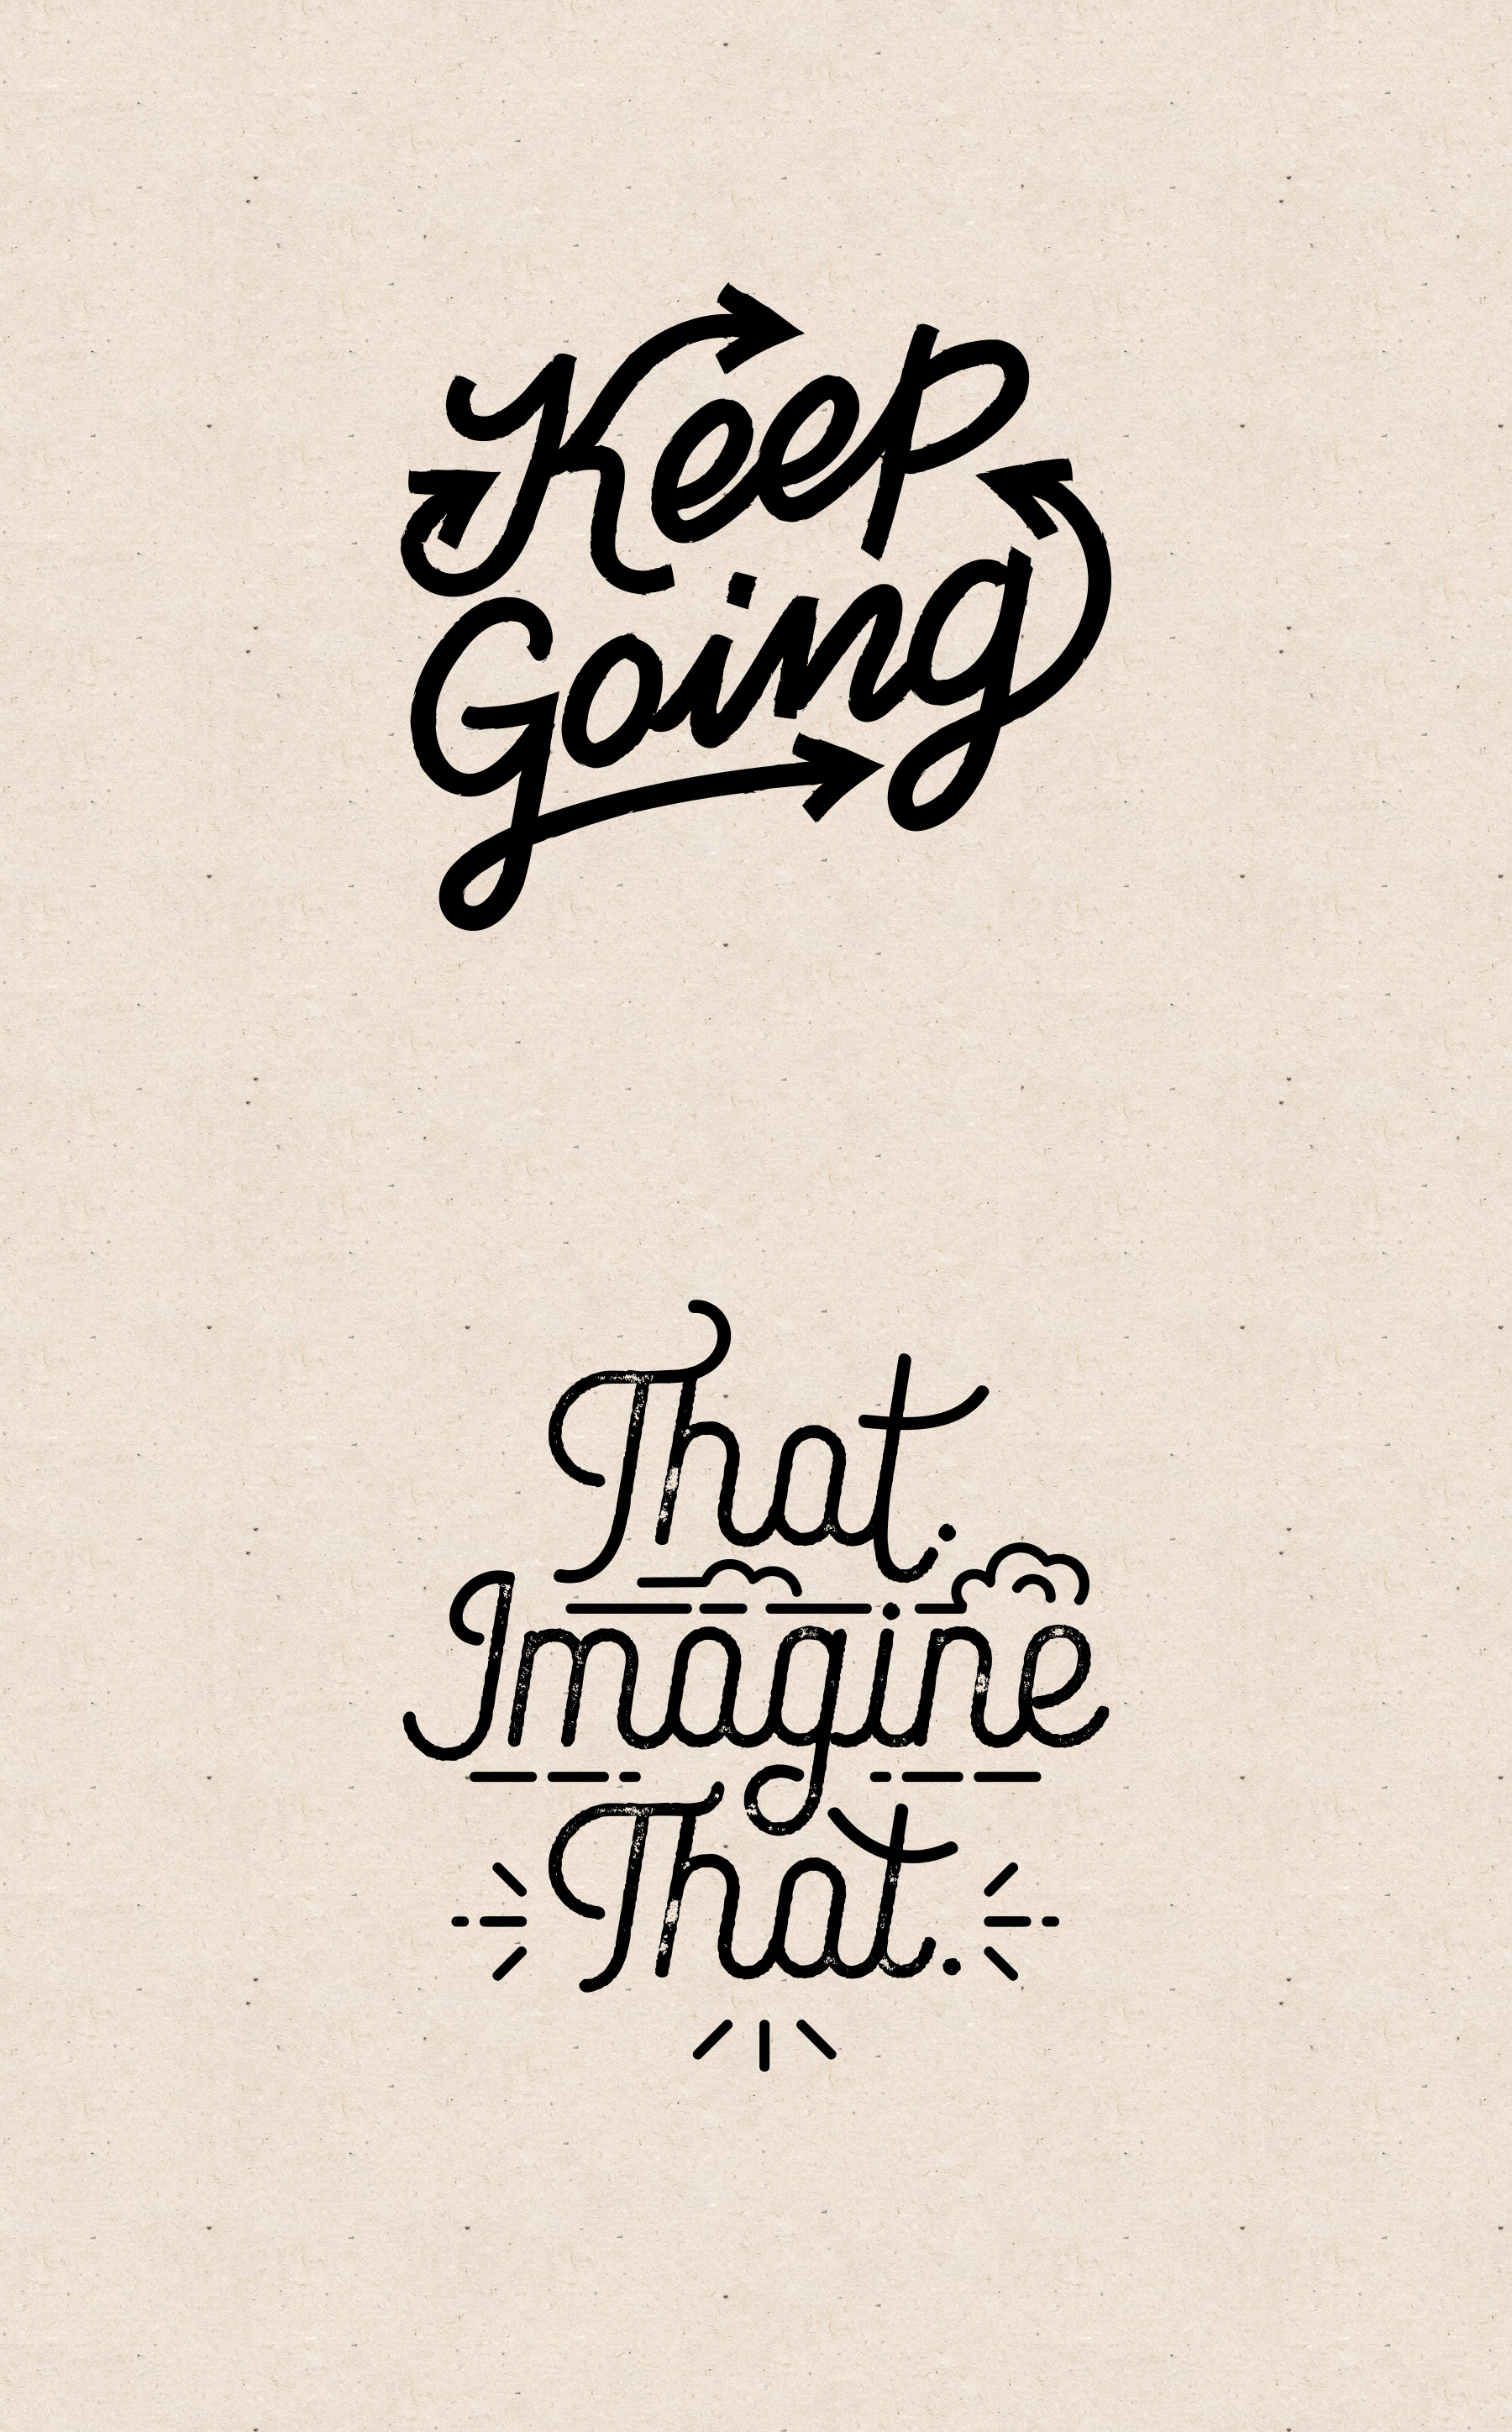 Fun hand lettering for motivational messages